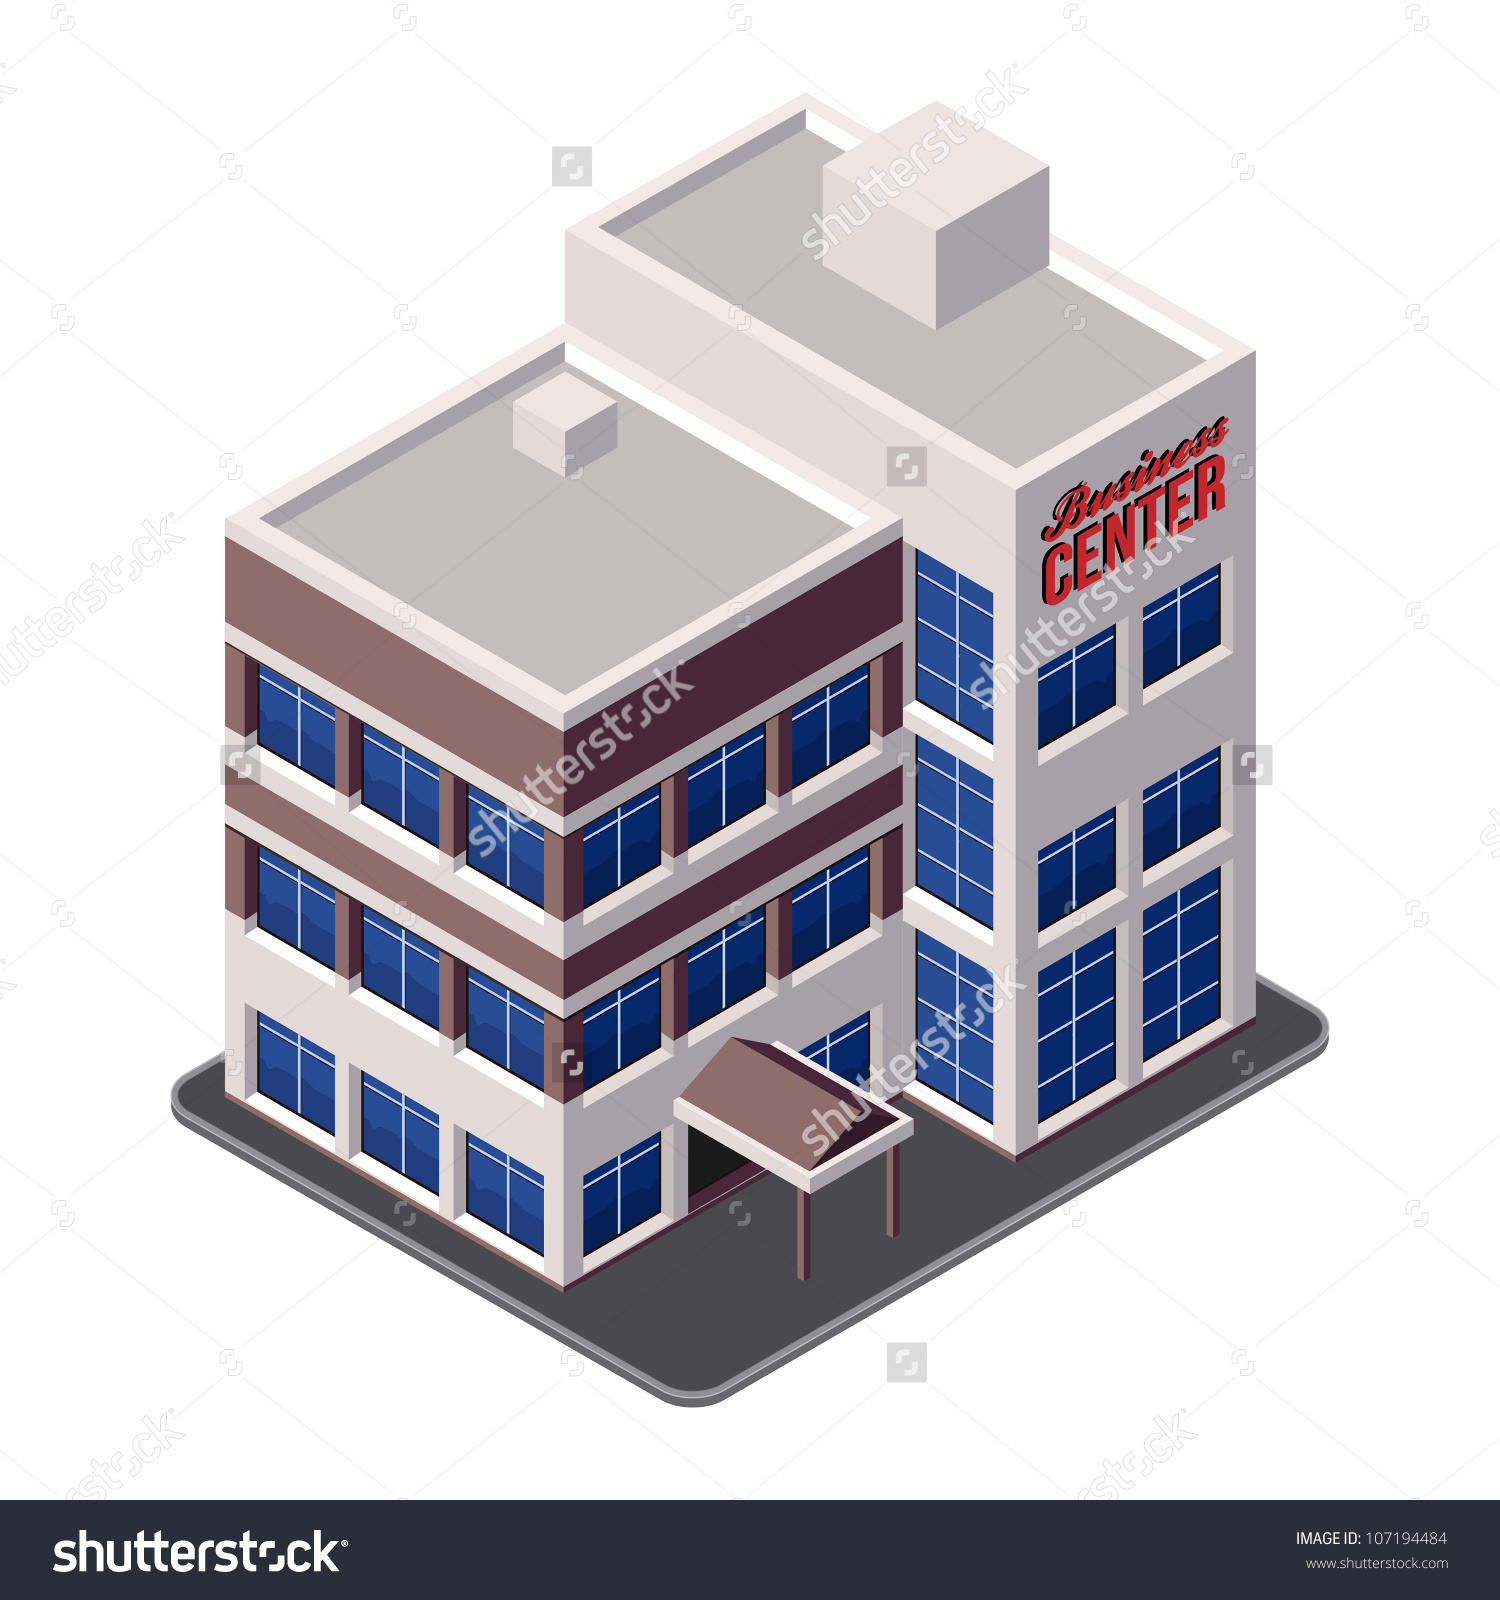 Business Center Building Office Real Estate Stock Vector 107194484.